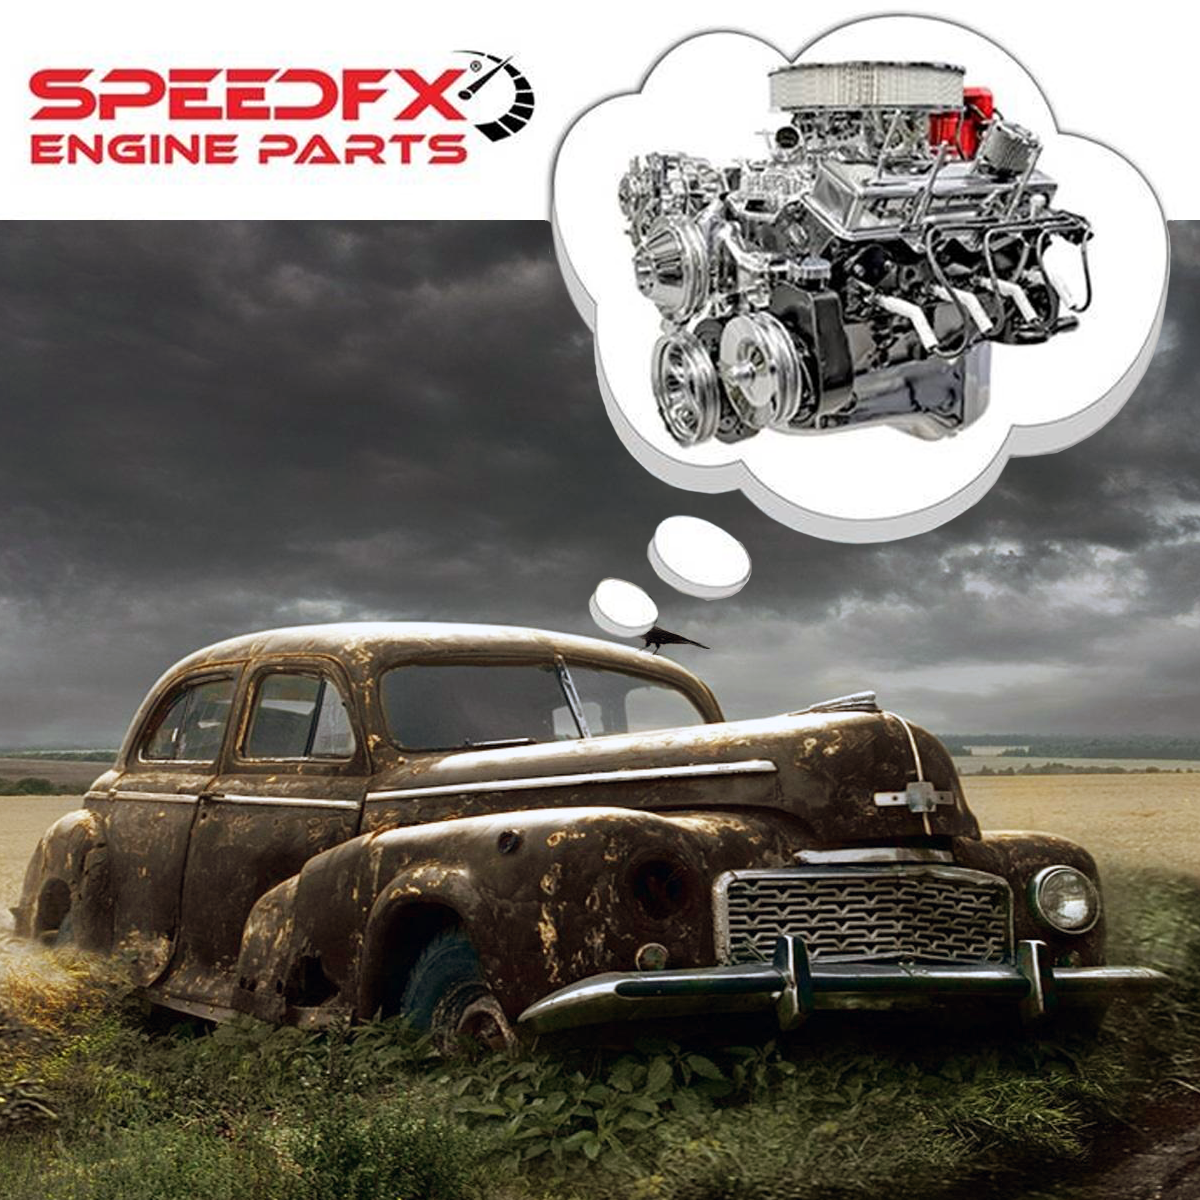 SpeedFX has the quality chrome engine dress up parts and accessories your engine needs and you deserve to show off. Whether you are at a car show or in your driveway, make popping the hood of your prized possession a proud moment. SpeedFX also has you covered with their line of air filters, mufflers, brake rotors and various hand tools. When it's time to restore your vehicle to its glory days, choose SpeedFX for the engine dress-up and performance parts and accessories that you can trust. Stop in and see us today to learn more about SpeedFX and take your vehicle to a whole new level.